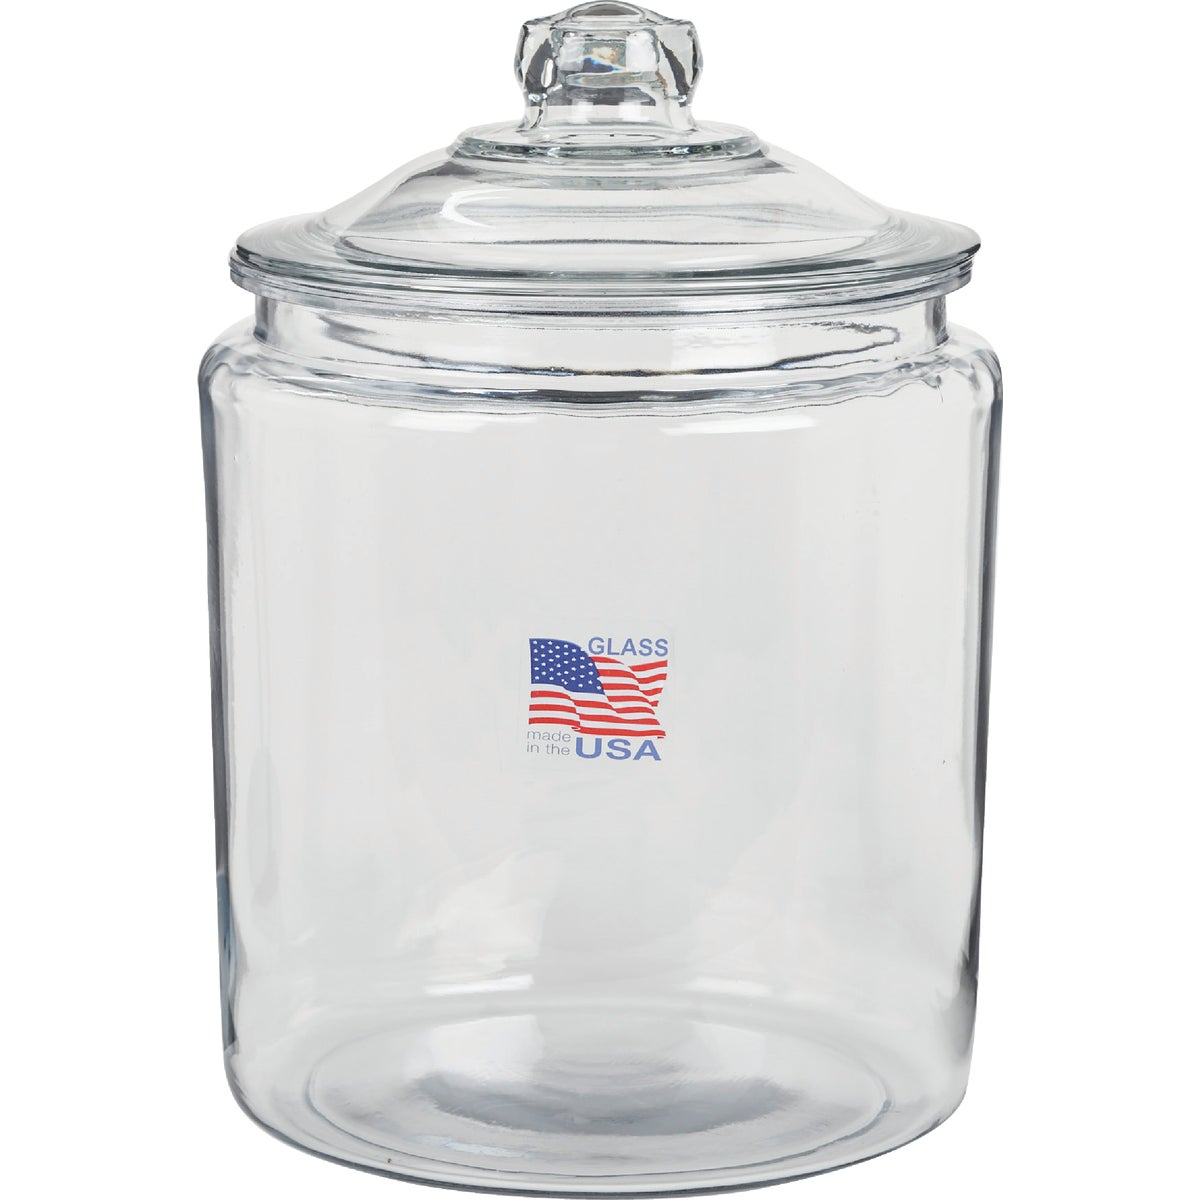 2 GALLON STORAGE JAR - 69372T by Anchor Hckg Roberts